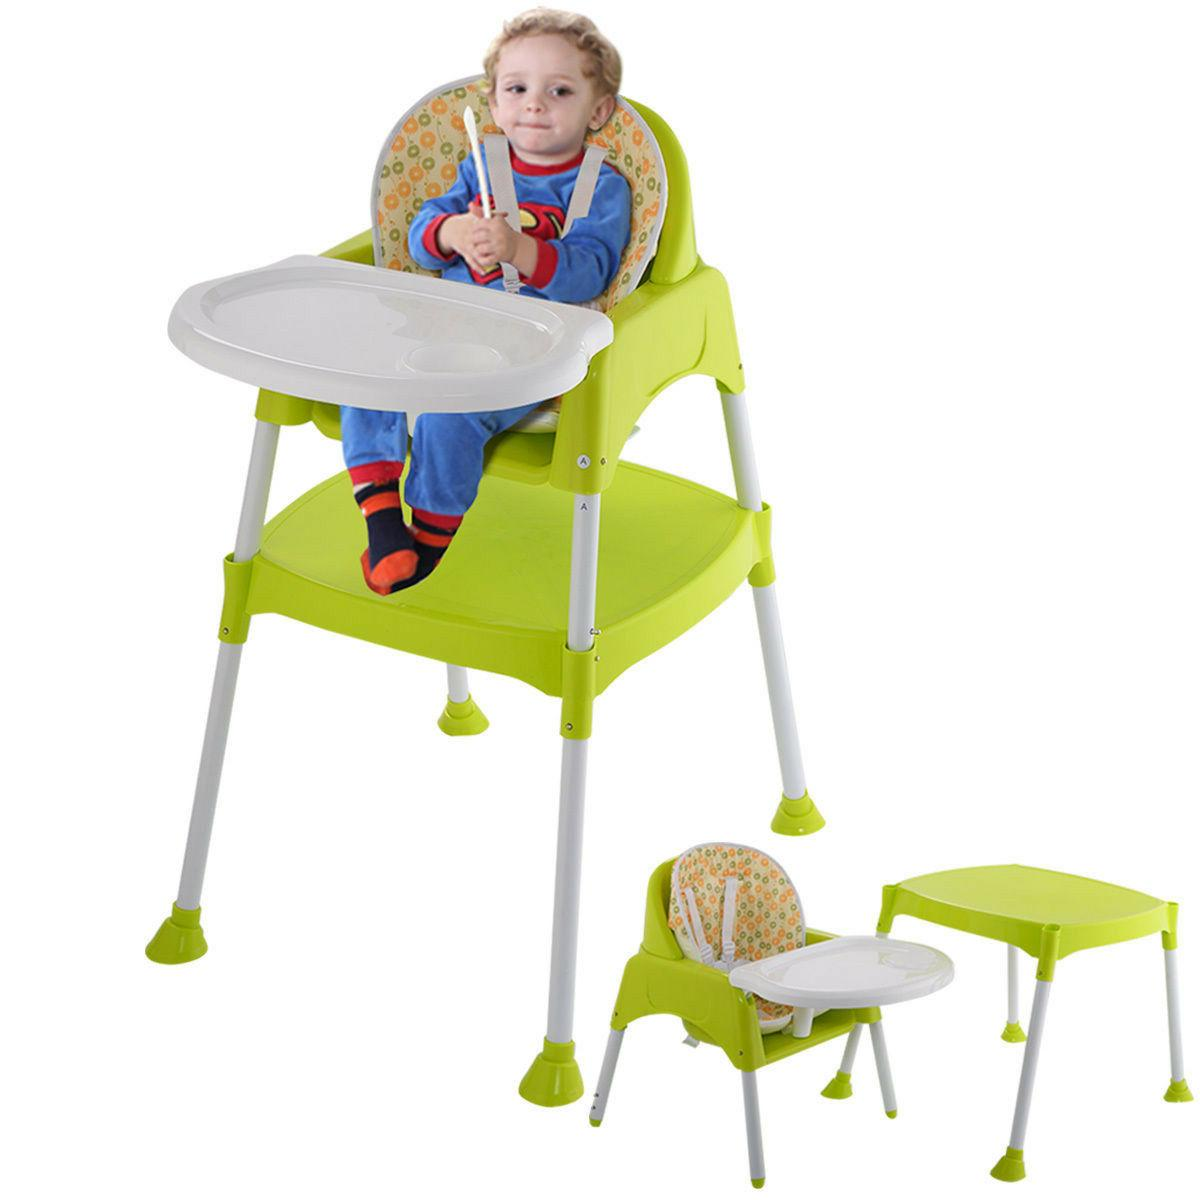 Costway Green 3 1 Baby Chair Convertible Toddler Feed